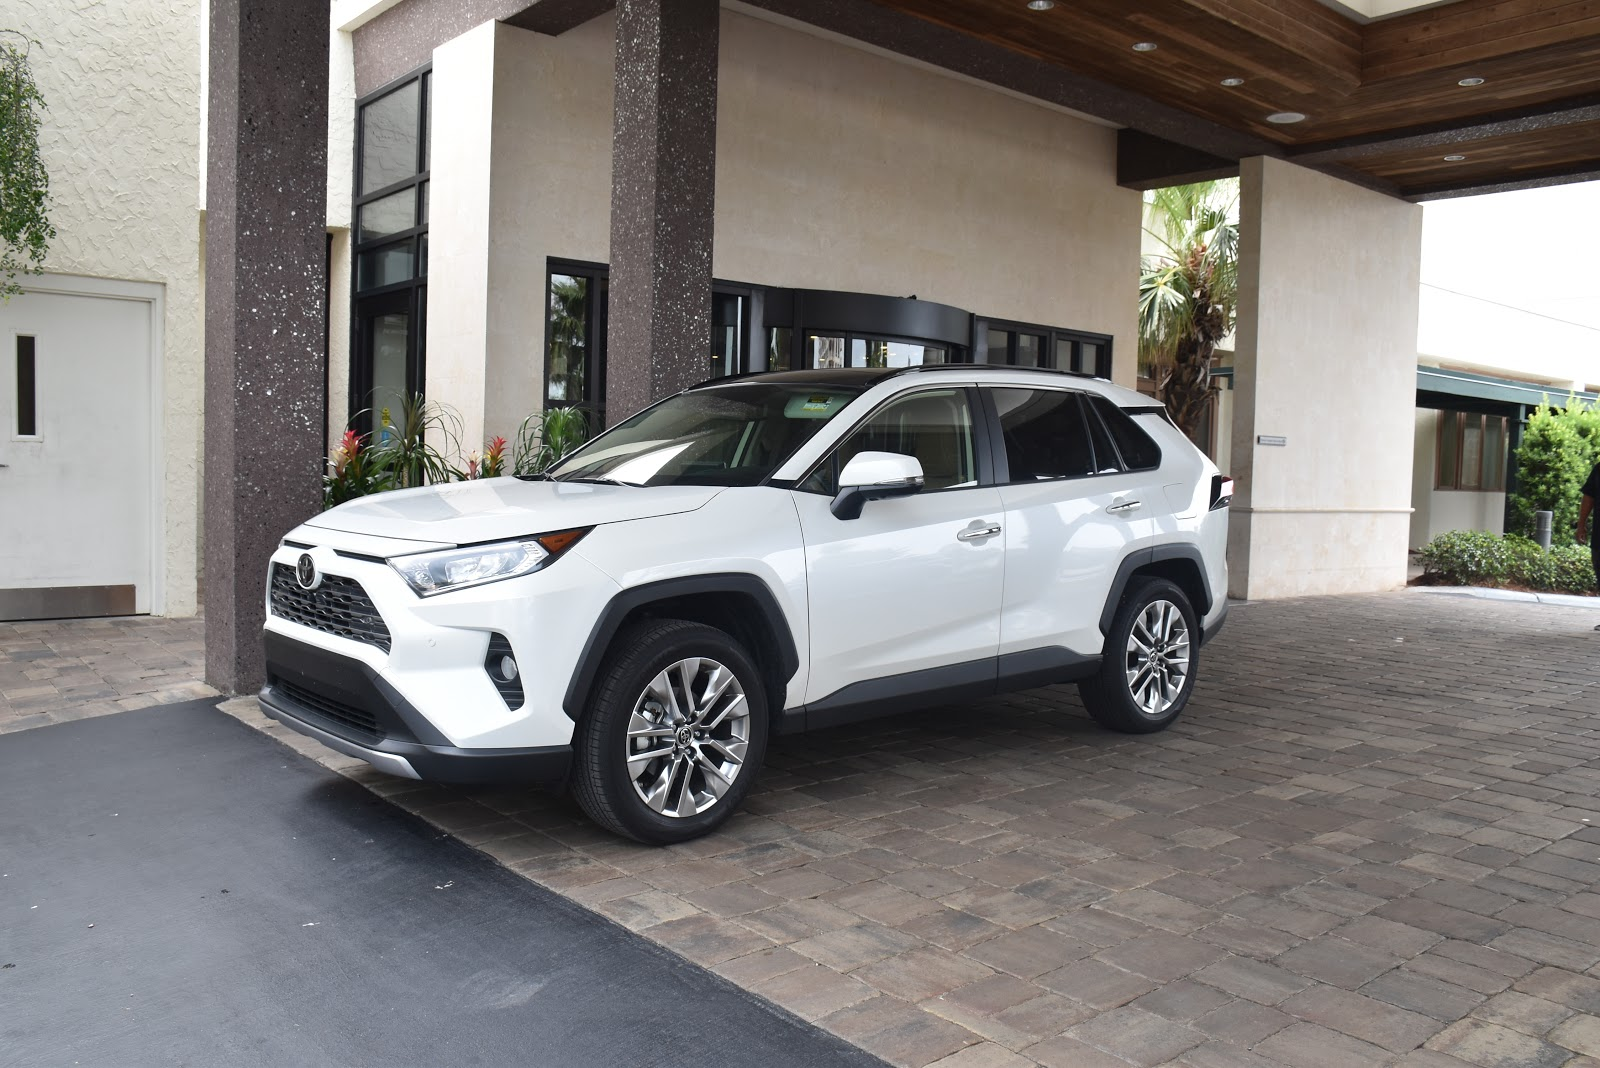 Video: Go on a Thrilling Adventure with the All-New 2019 Toyota RAV4